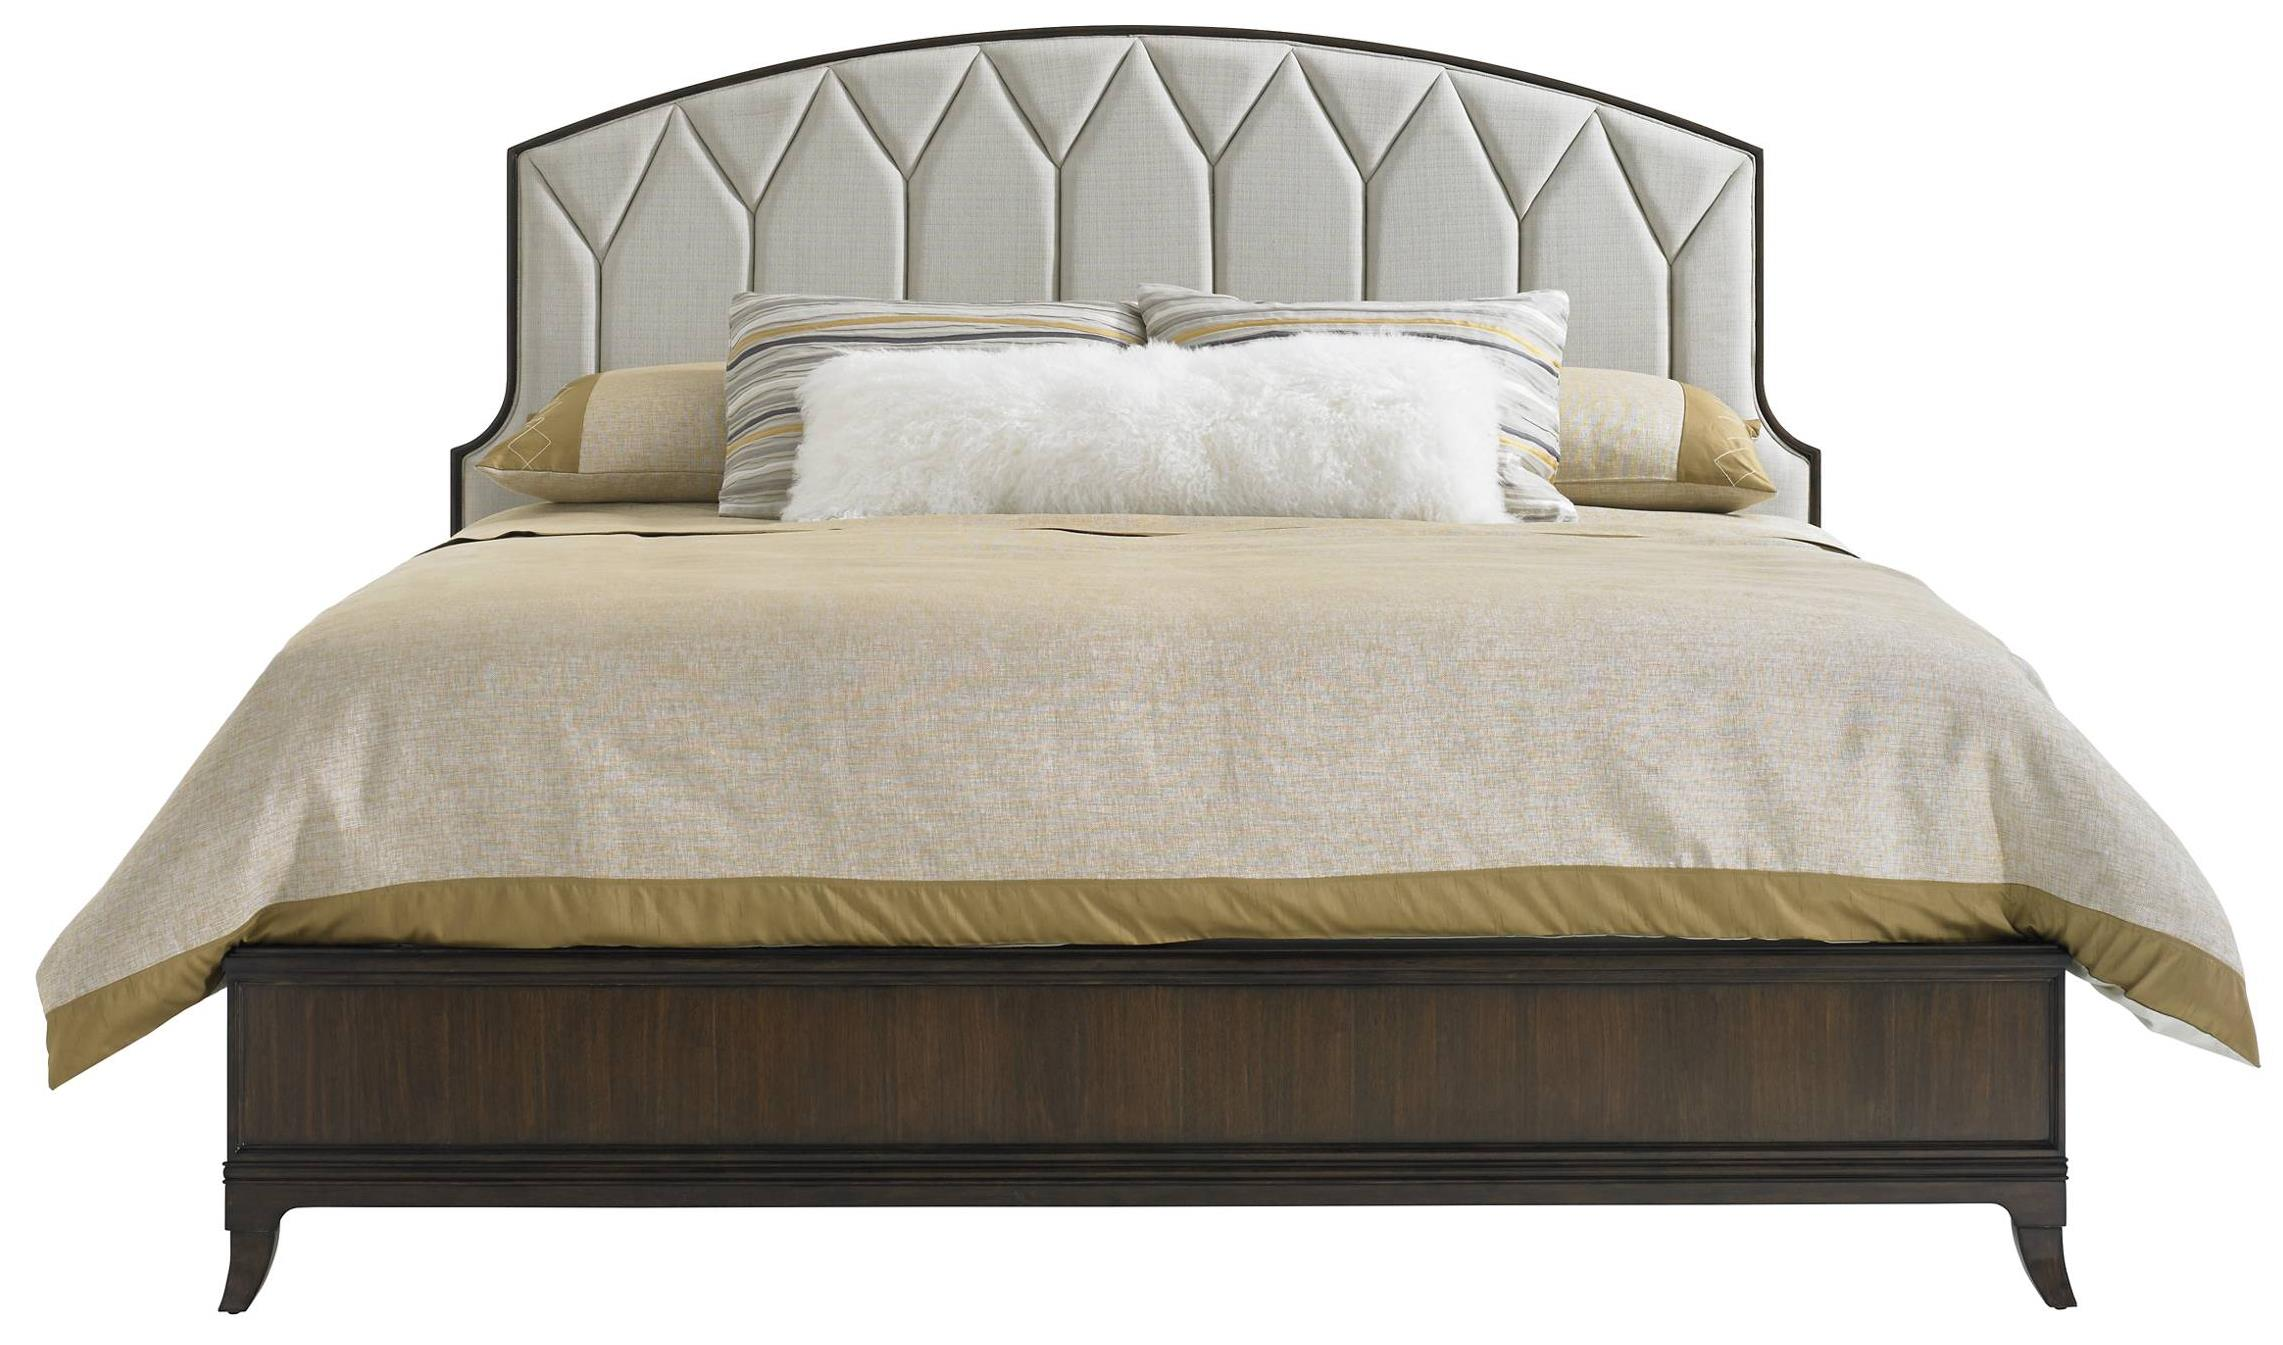 Stanley Furniture Crestaire King Ladera Bed - Item Number: 436-13-47